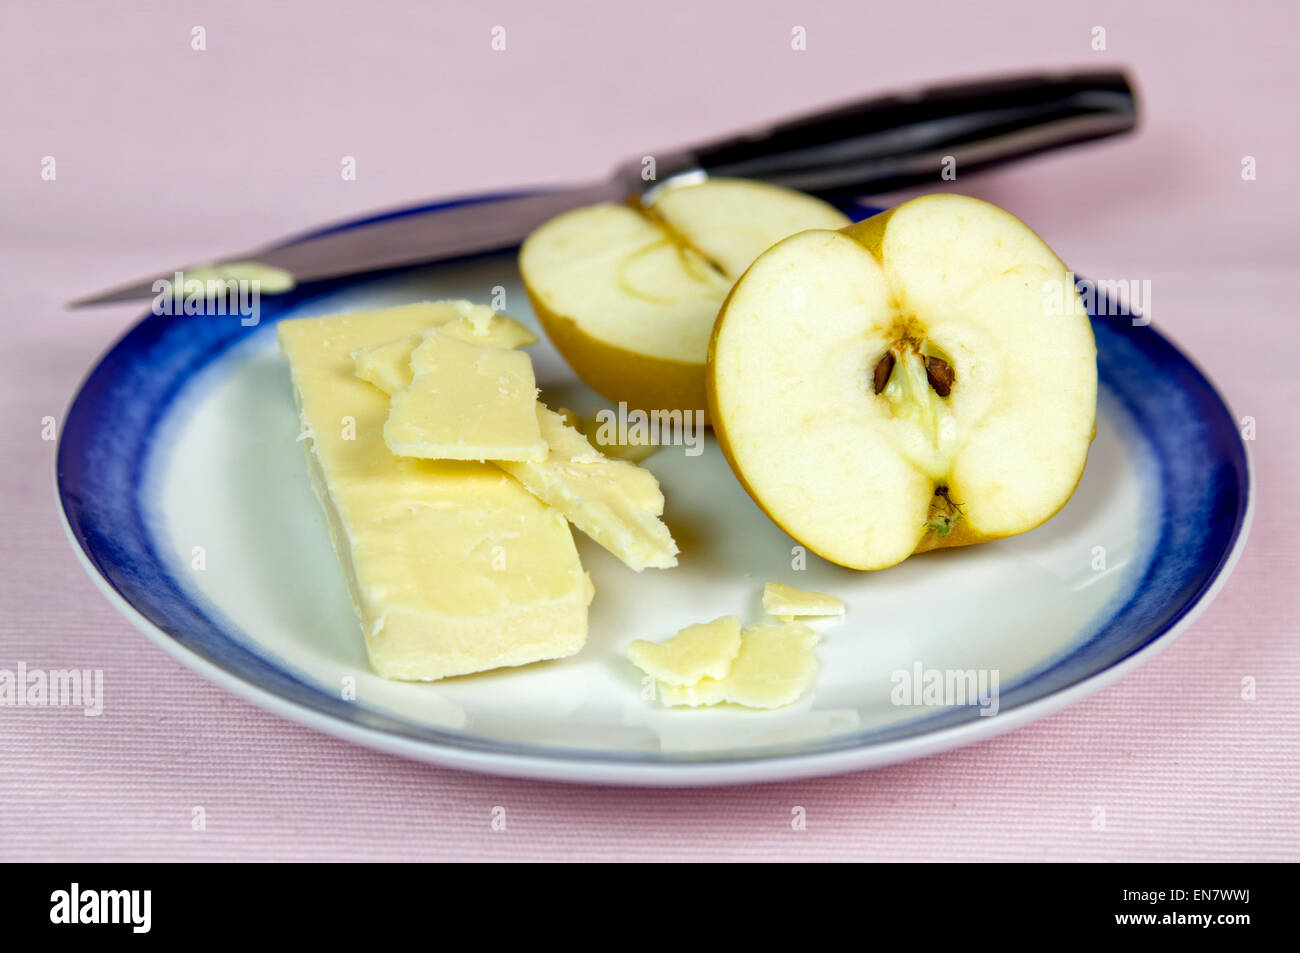 Egremont russet apples with cheese on plate. Egremont russet apples are an old fashioned English apple dating back - Stock Image